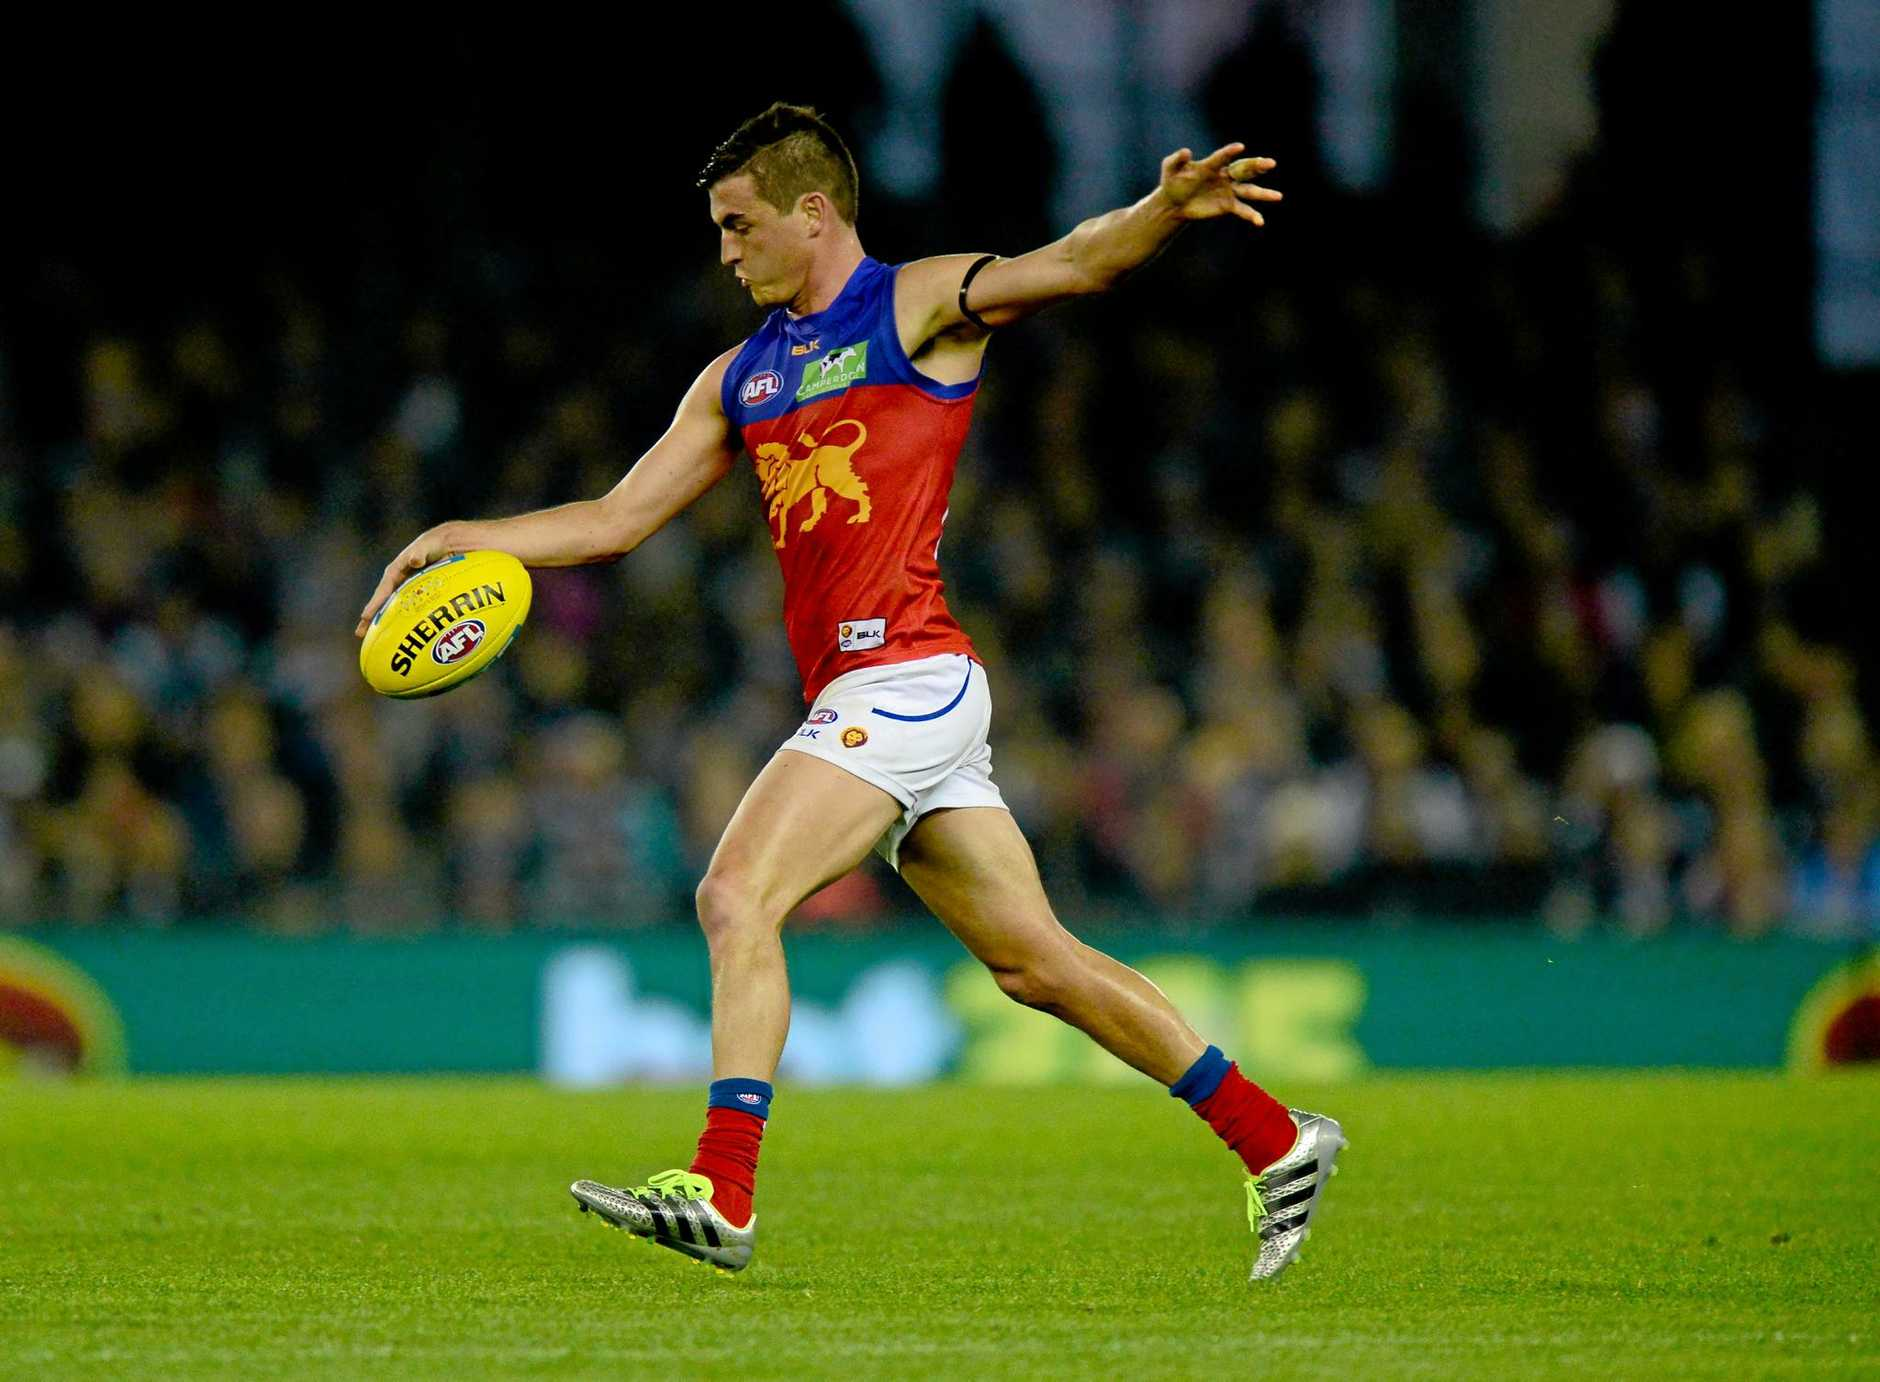 TALKS STALLED: Lions skipper Tom Rockliff kicks the ball during the Round 11 AFL match between the Carlton Blues and Brisbane at Etihad Stadium.